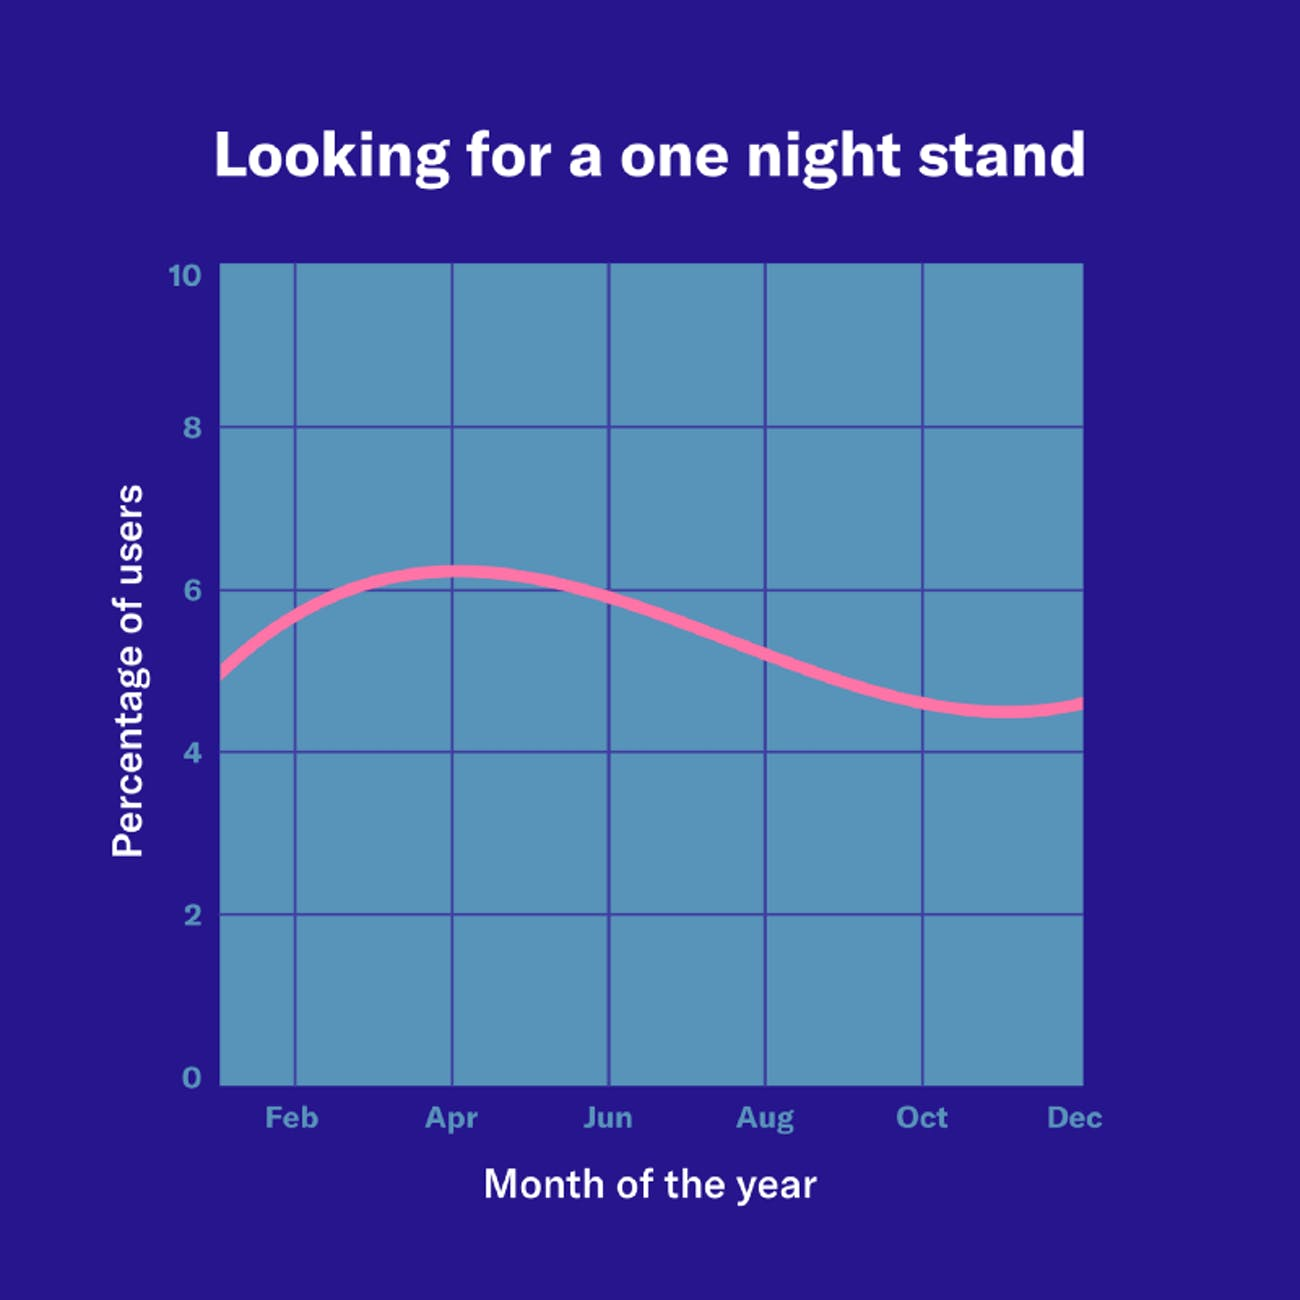 okcupid casual sex data